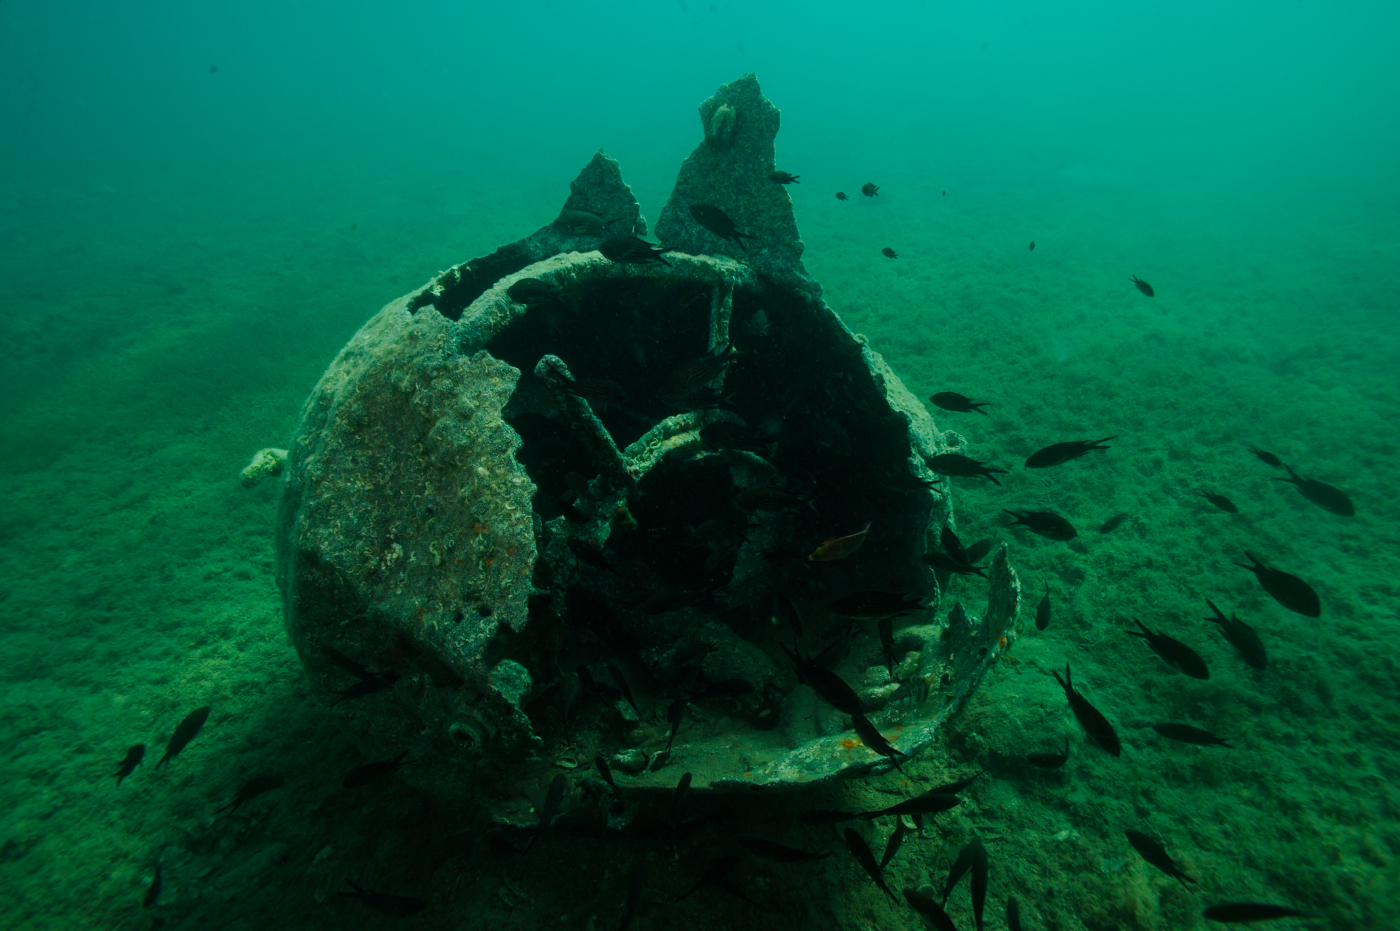 While diving, we spotted a Second World War naval mine © Philippe Henry / OCEAN71 Magazine